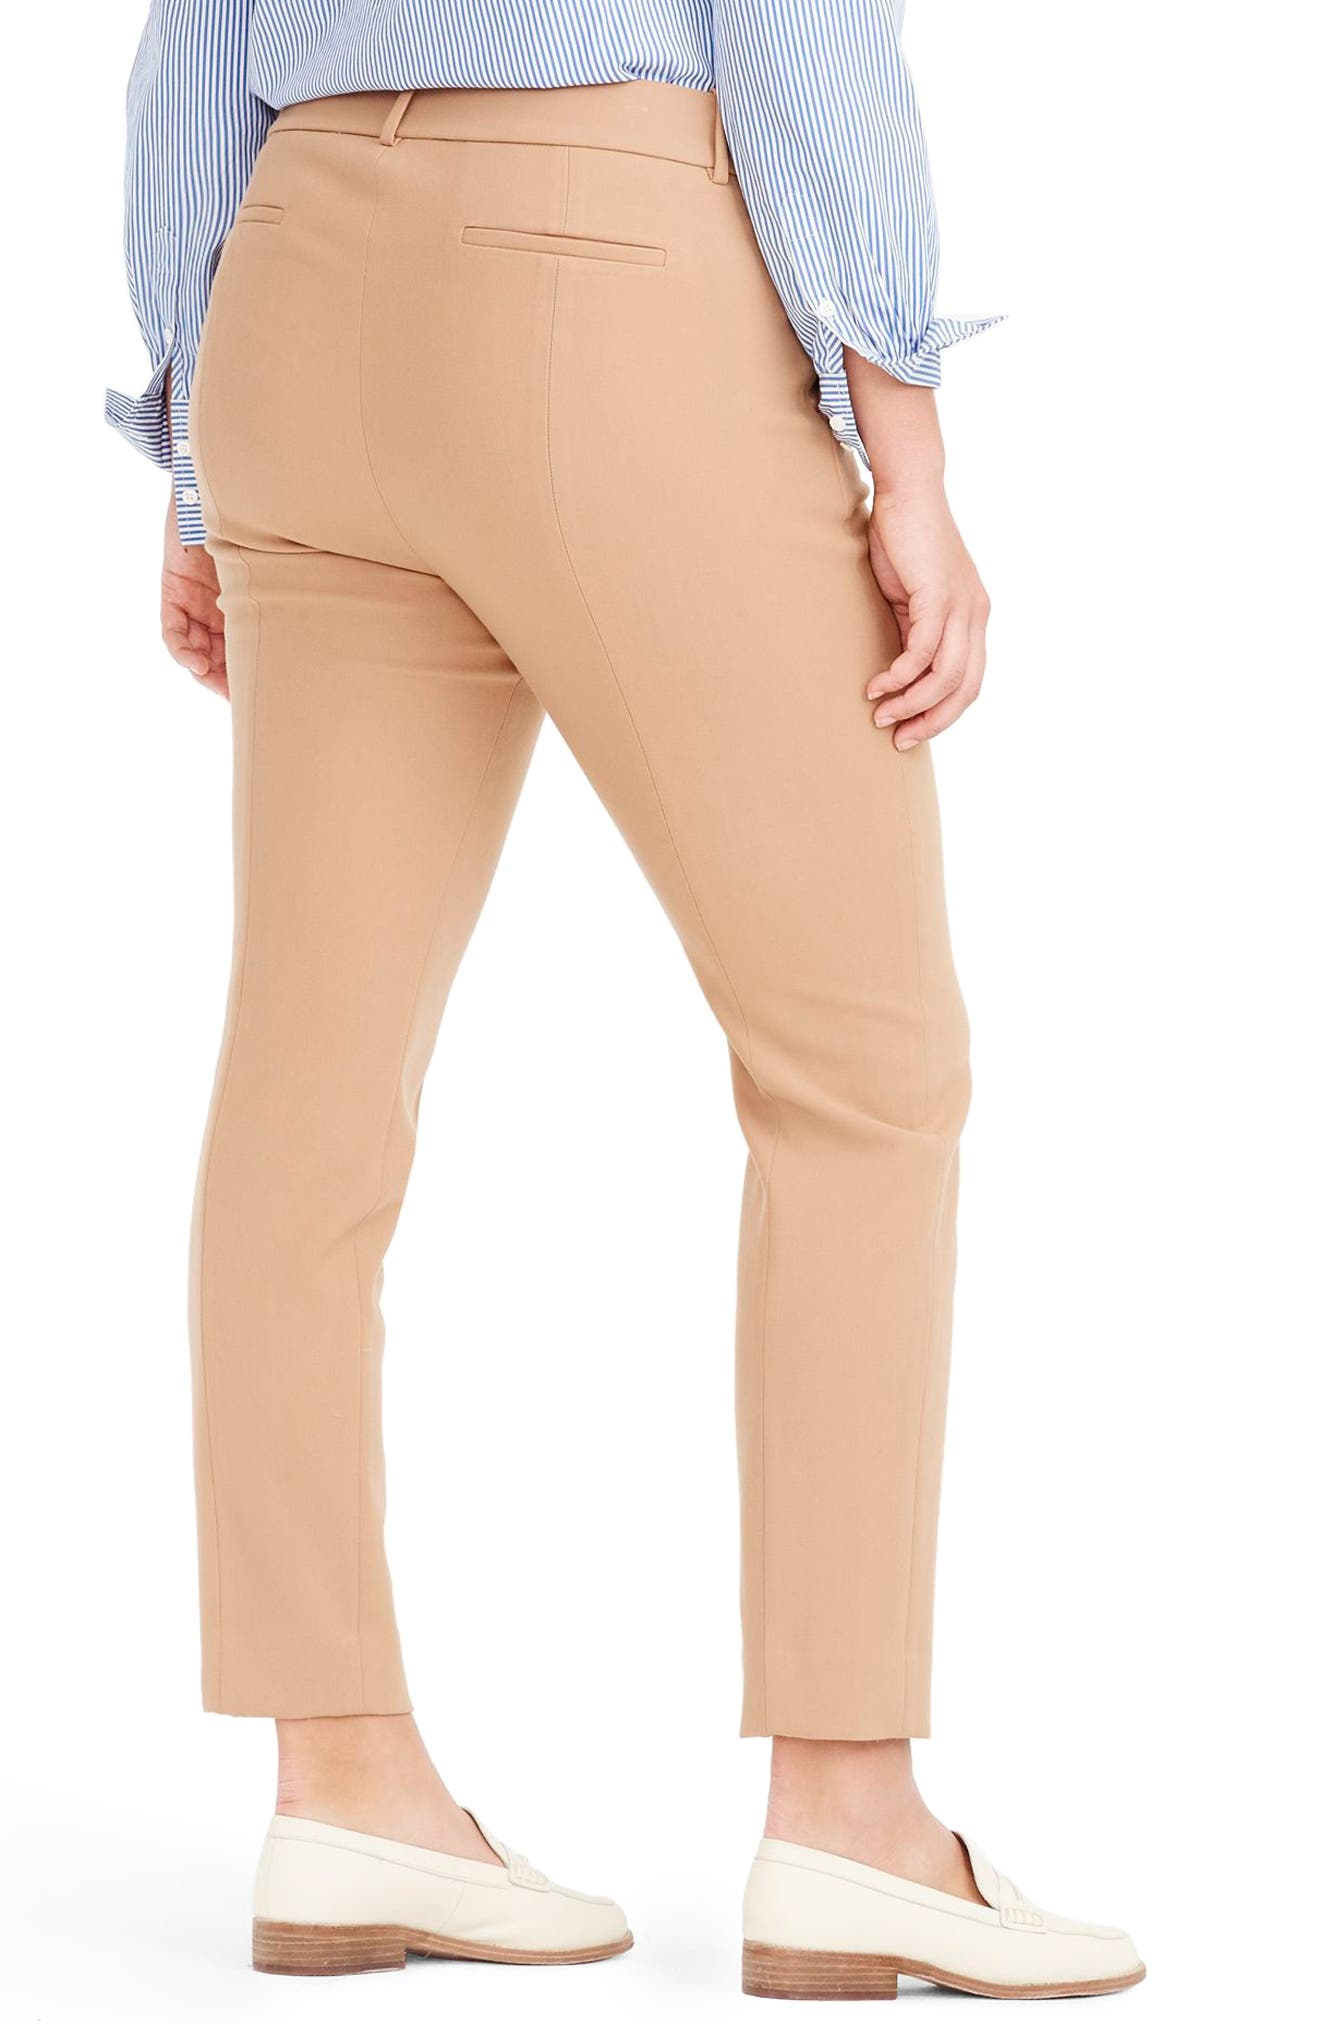 Cameron Four Season Crop Pants,                             Alternate thumbnail 8, color,                             HEATHER SADDLE